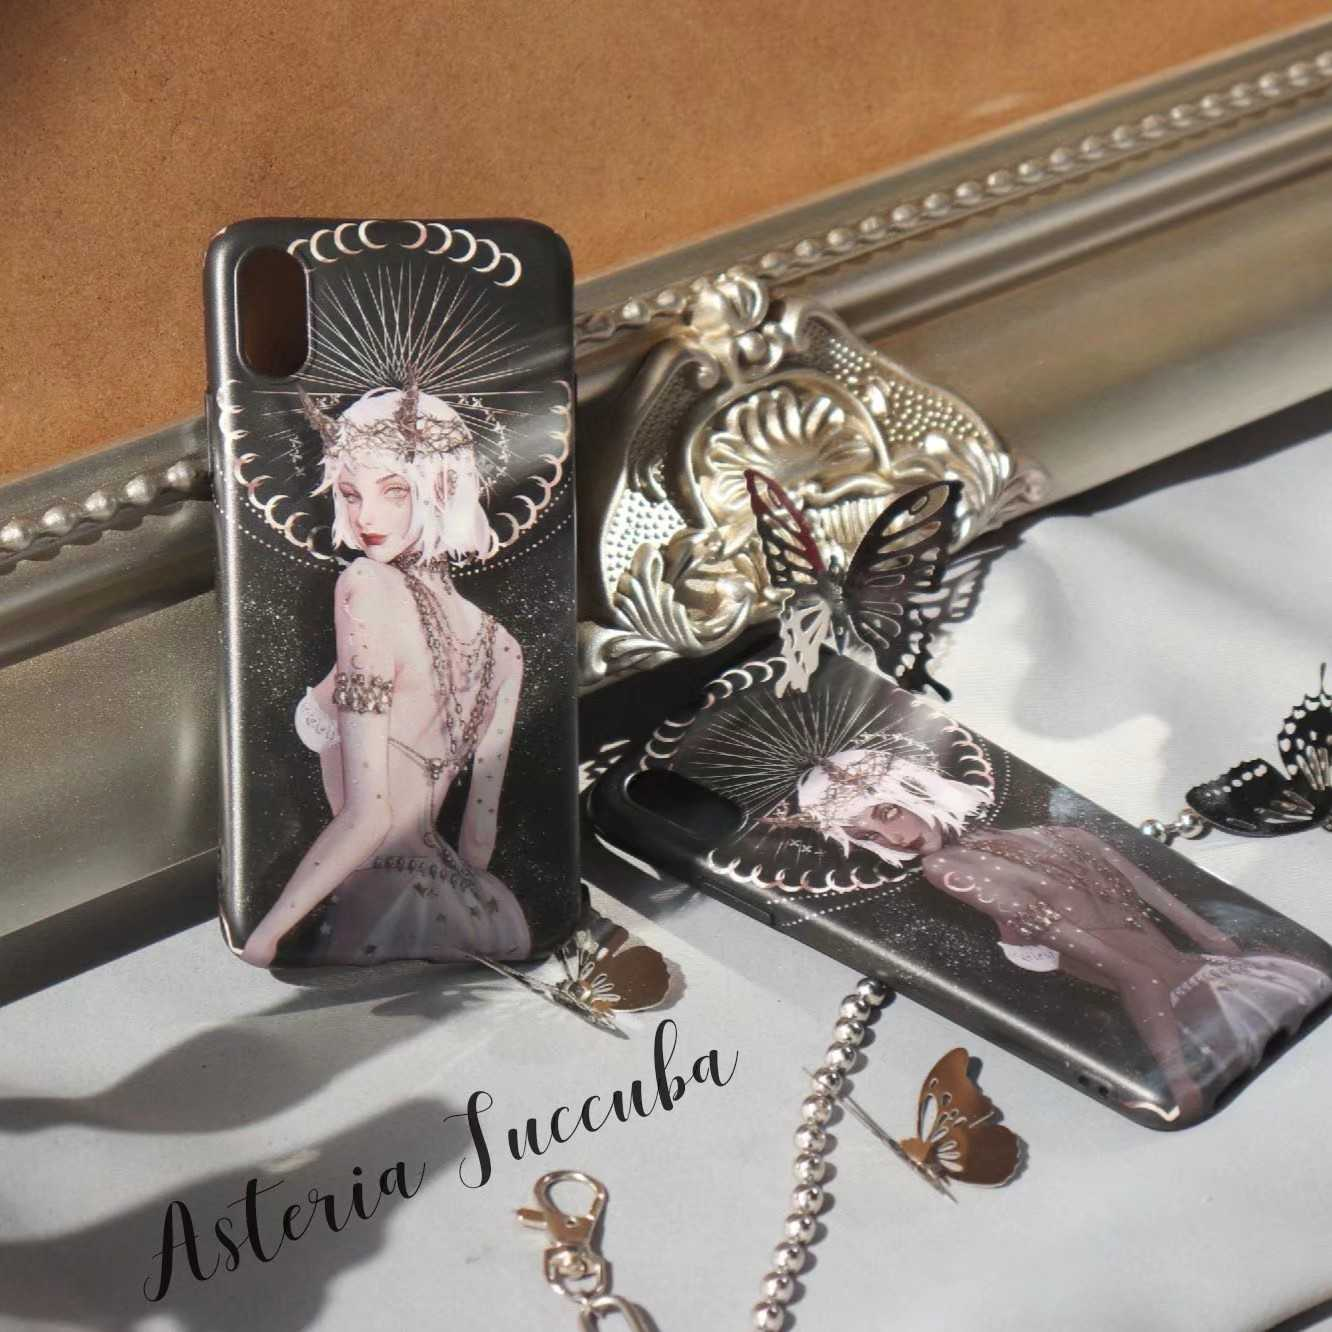 Asteria sucuba series customized mobile phone case